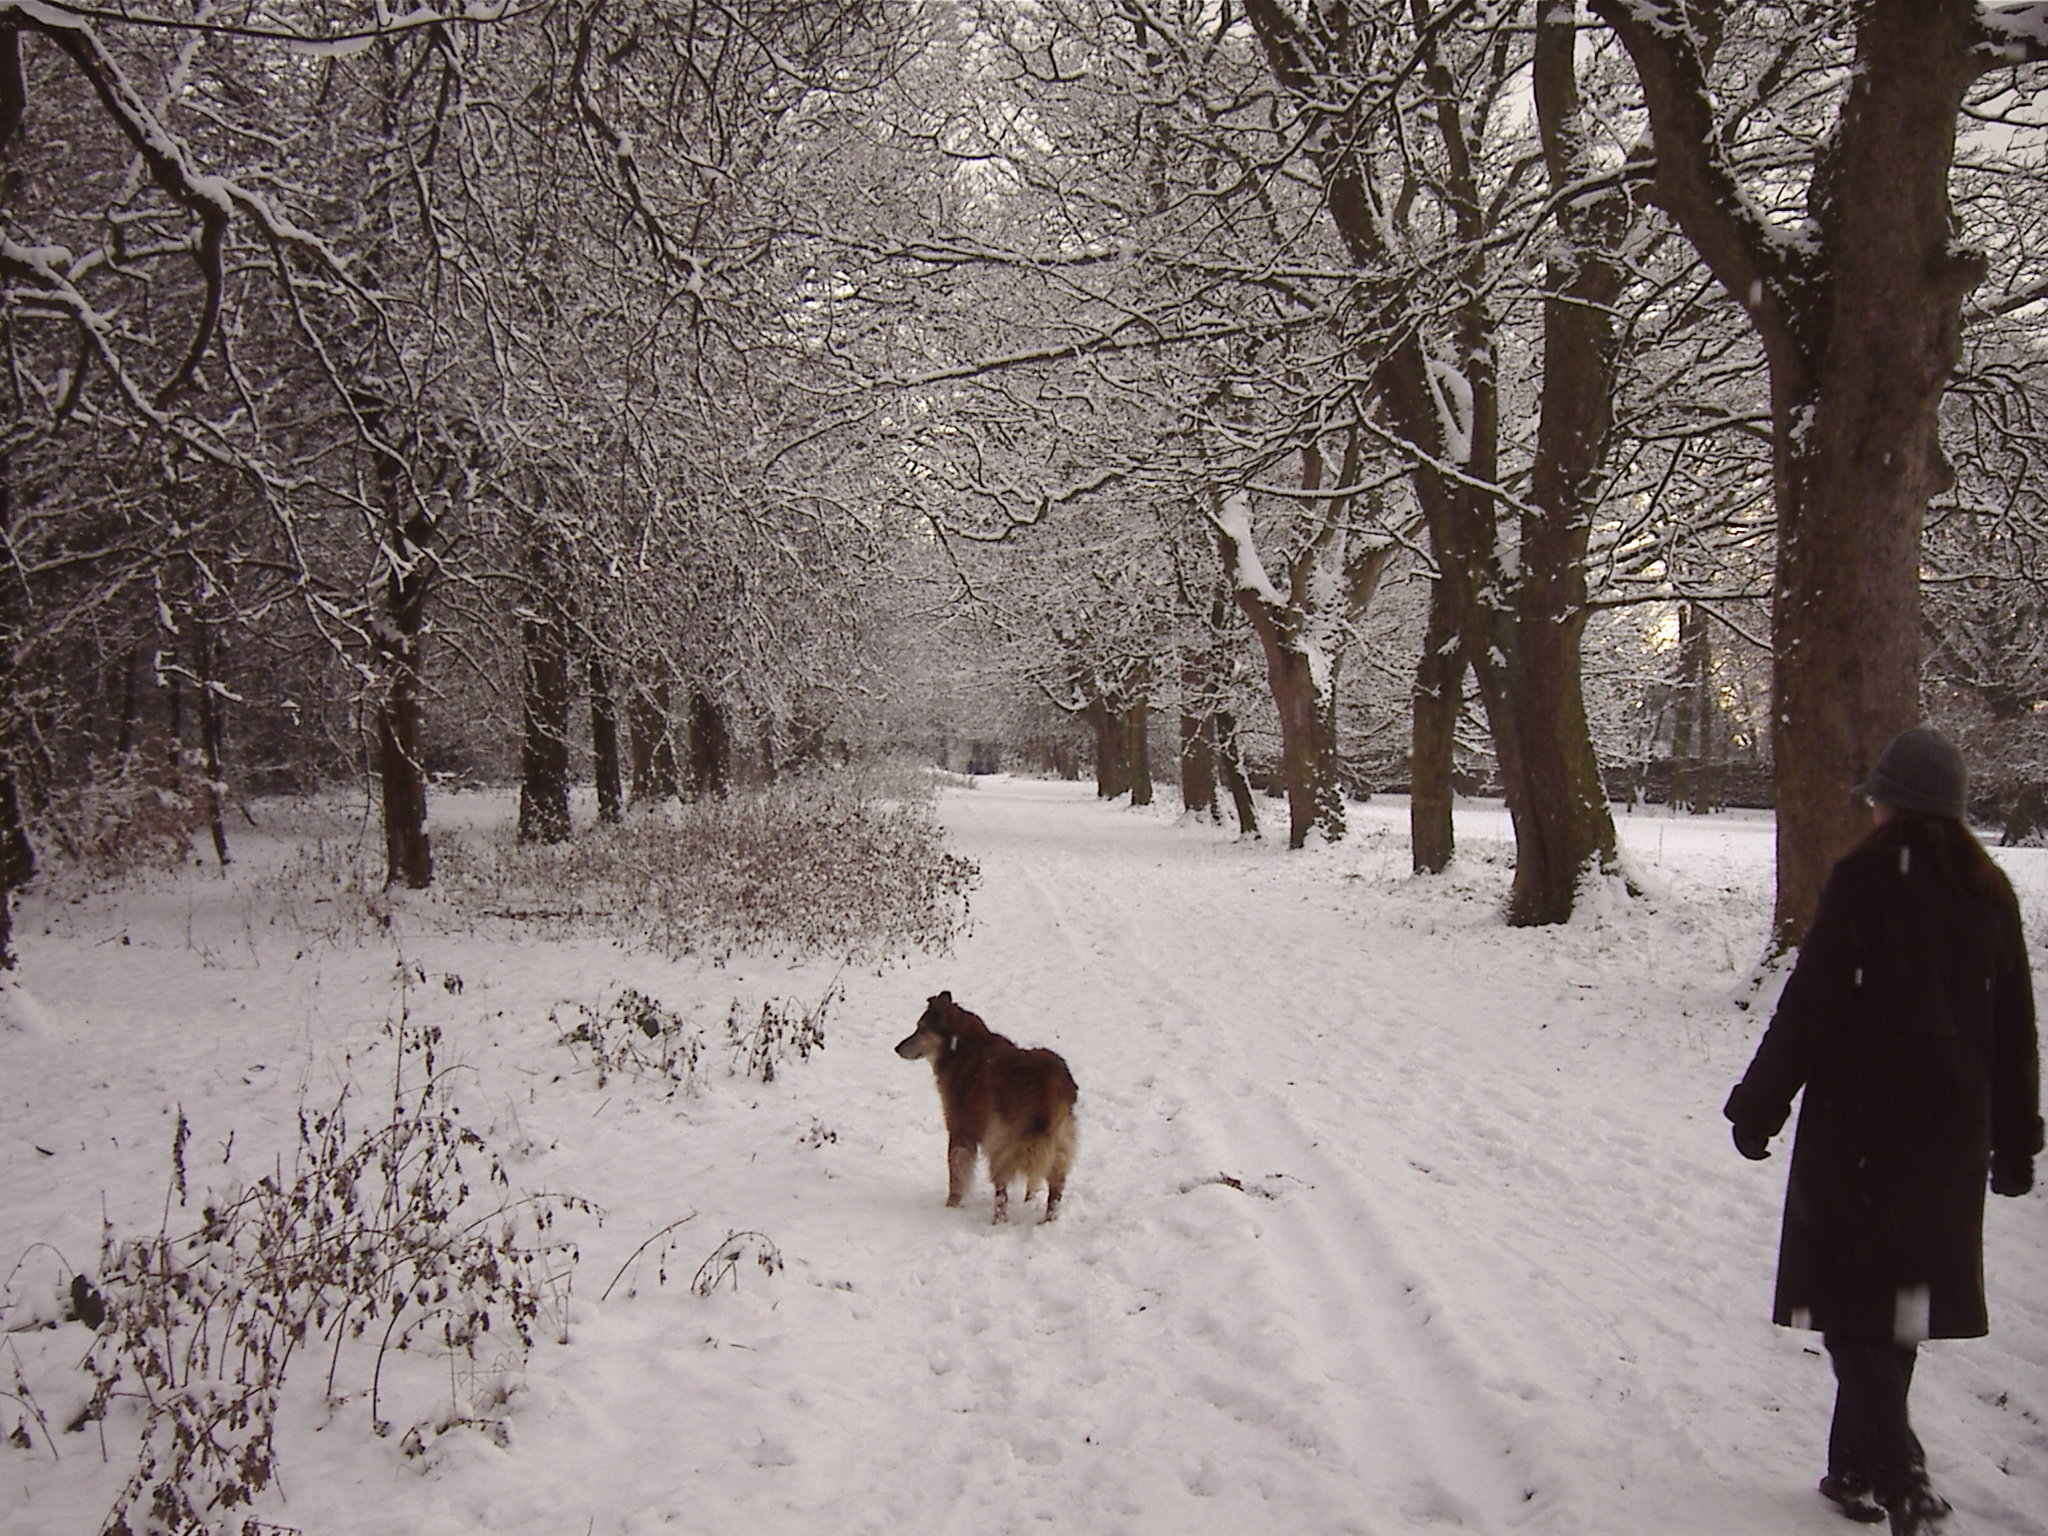 Max and Avenue of Snow 2 - Clarks Gardens Woolton 18th December 2010